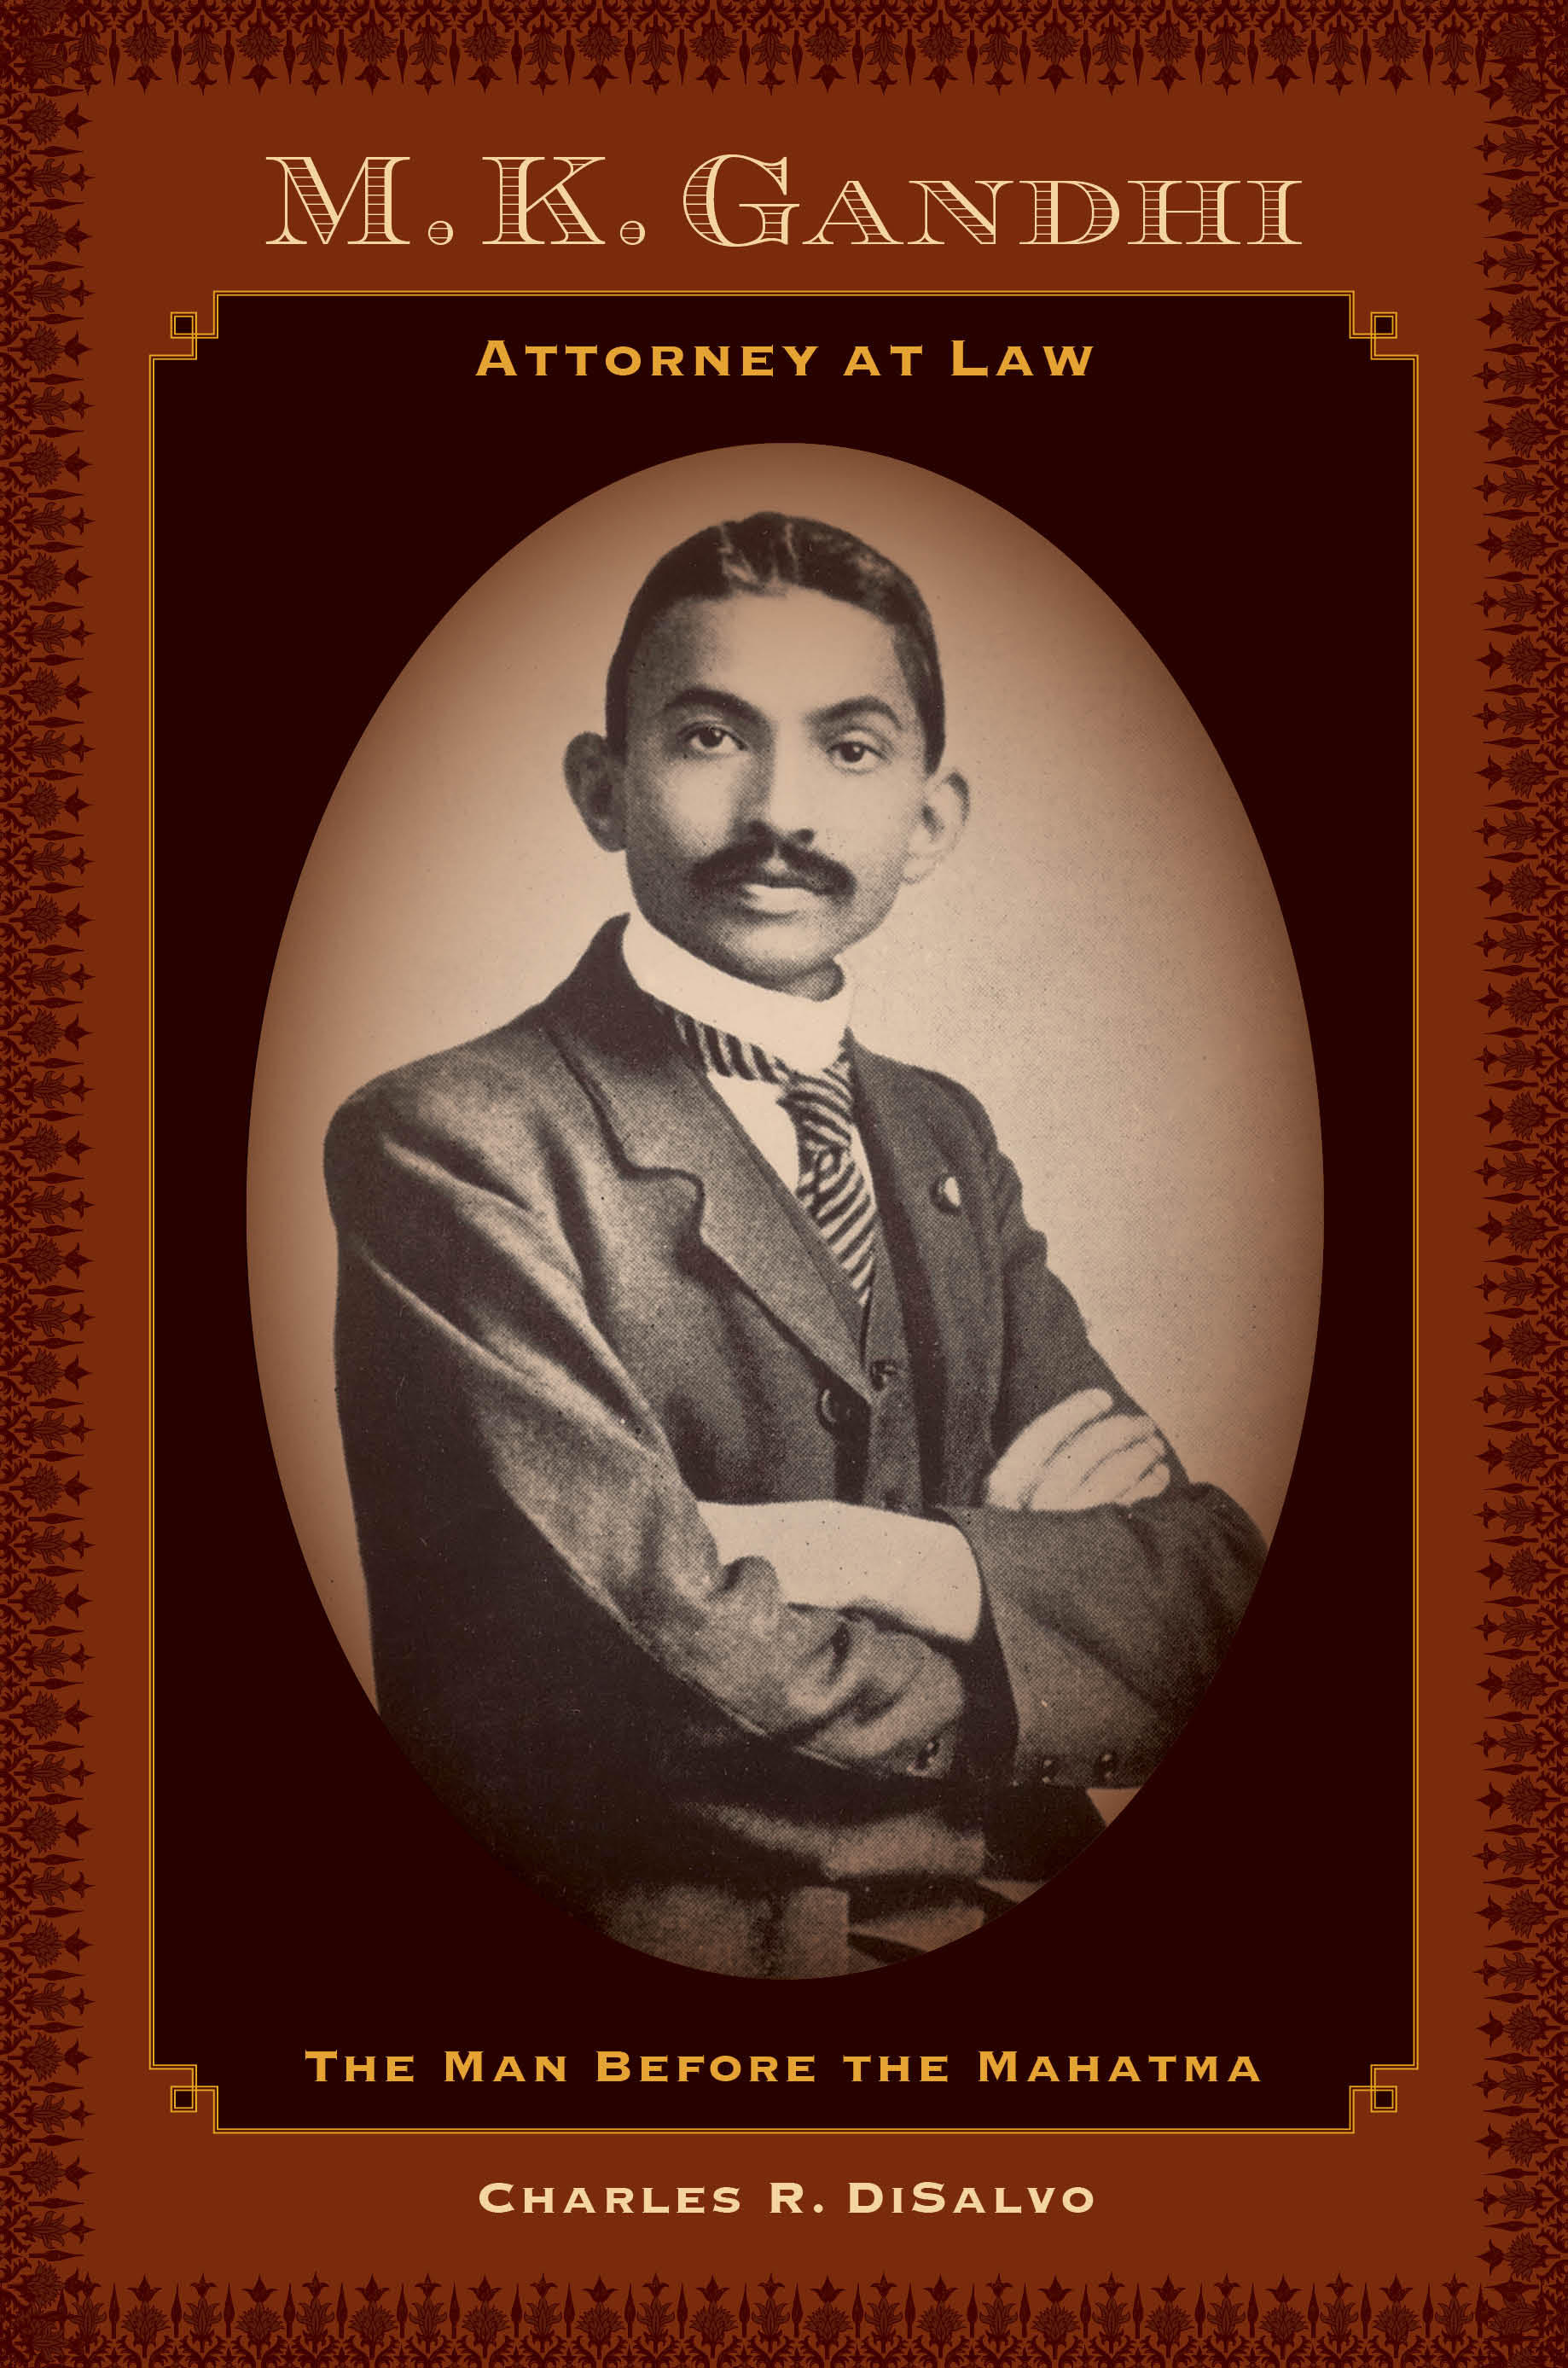 Image result for Image of Mahatma Gandhi as a barrister